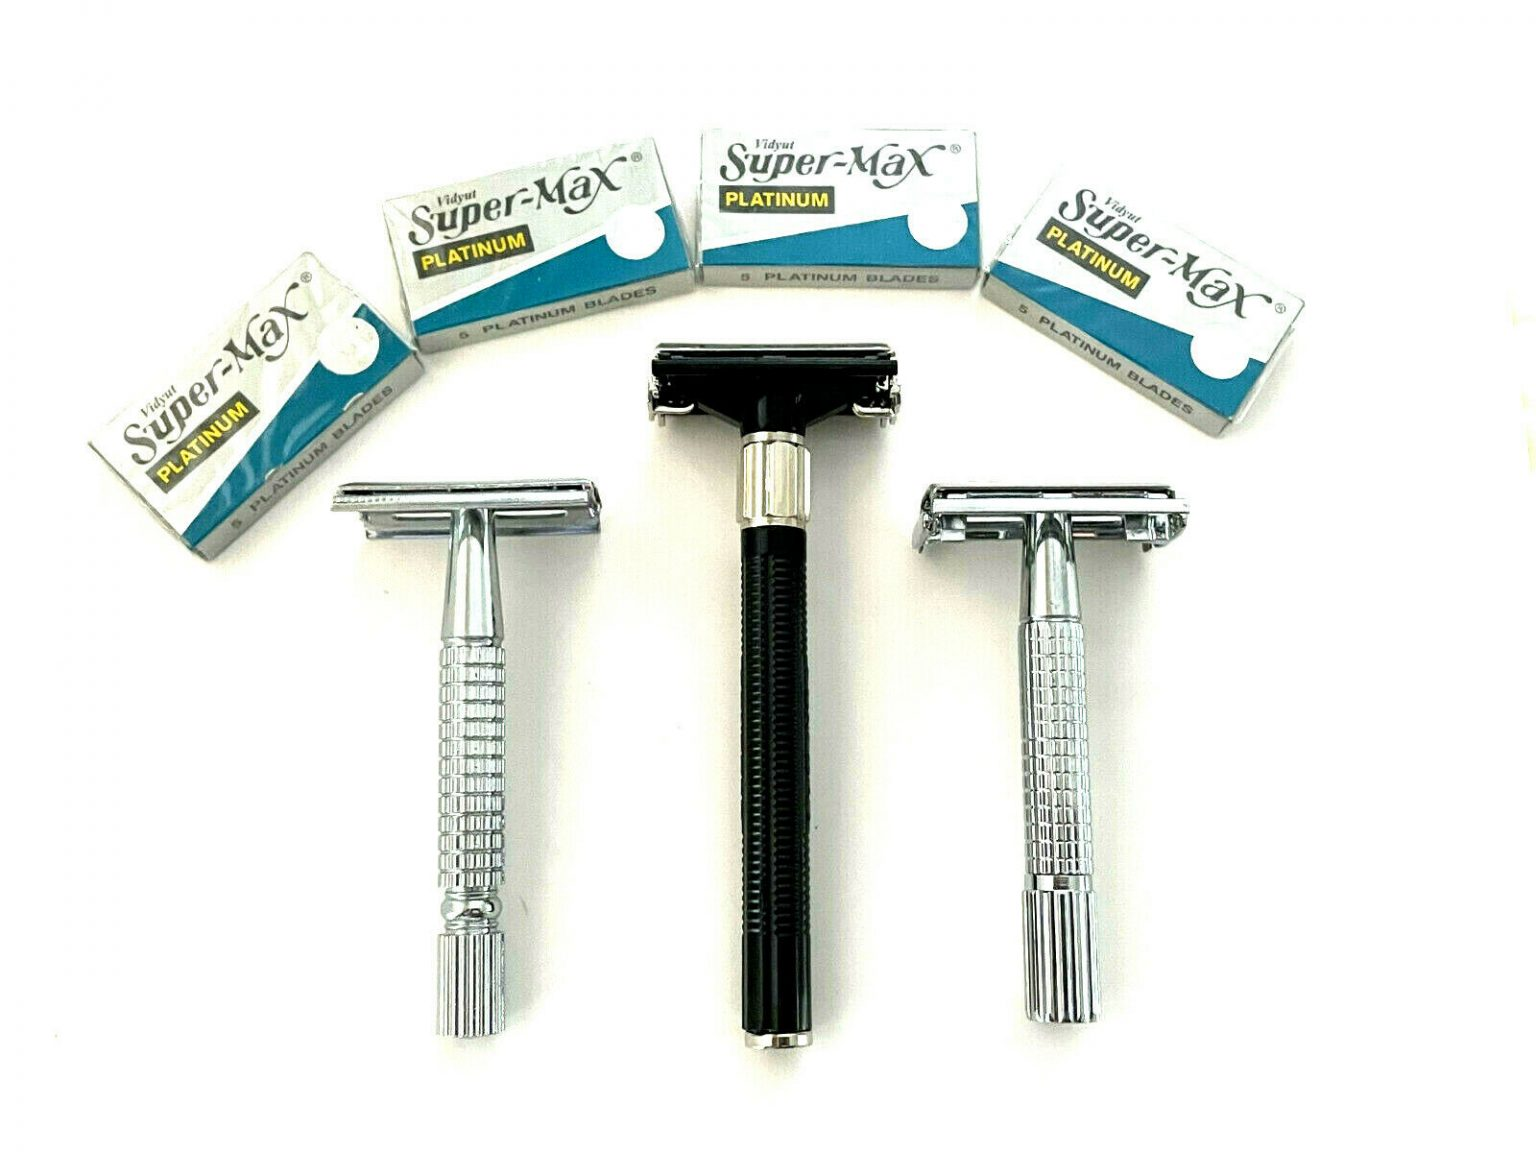 Timers Classic Safety Razors